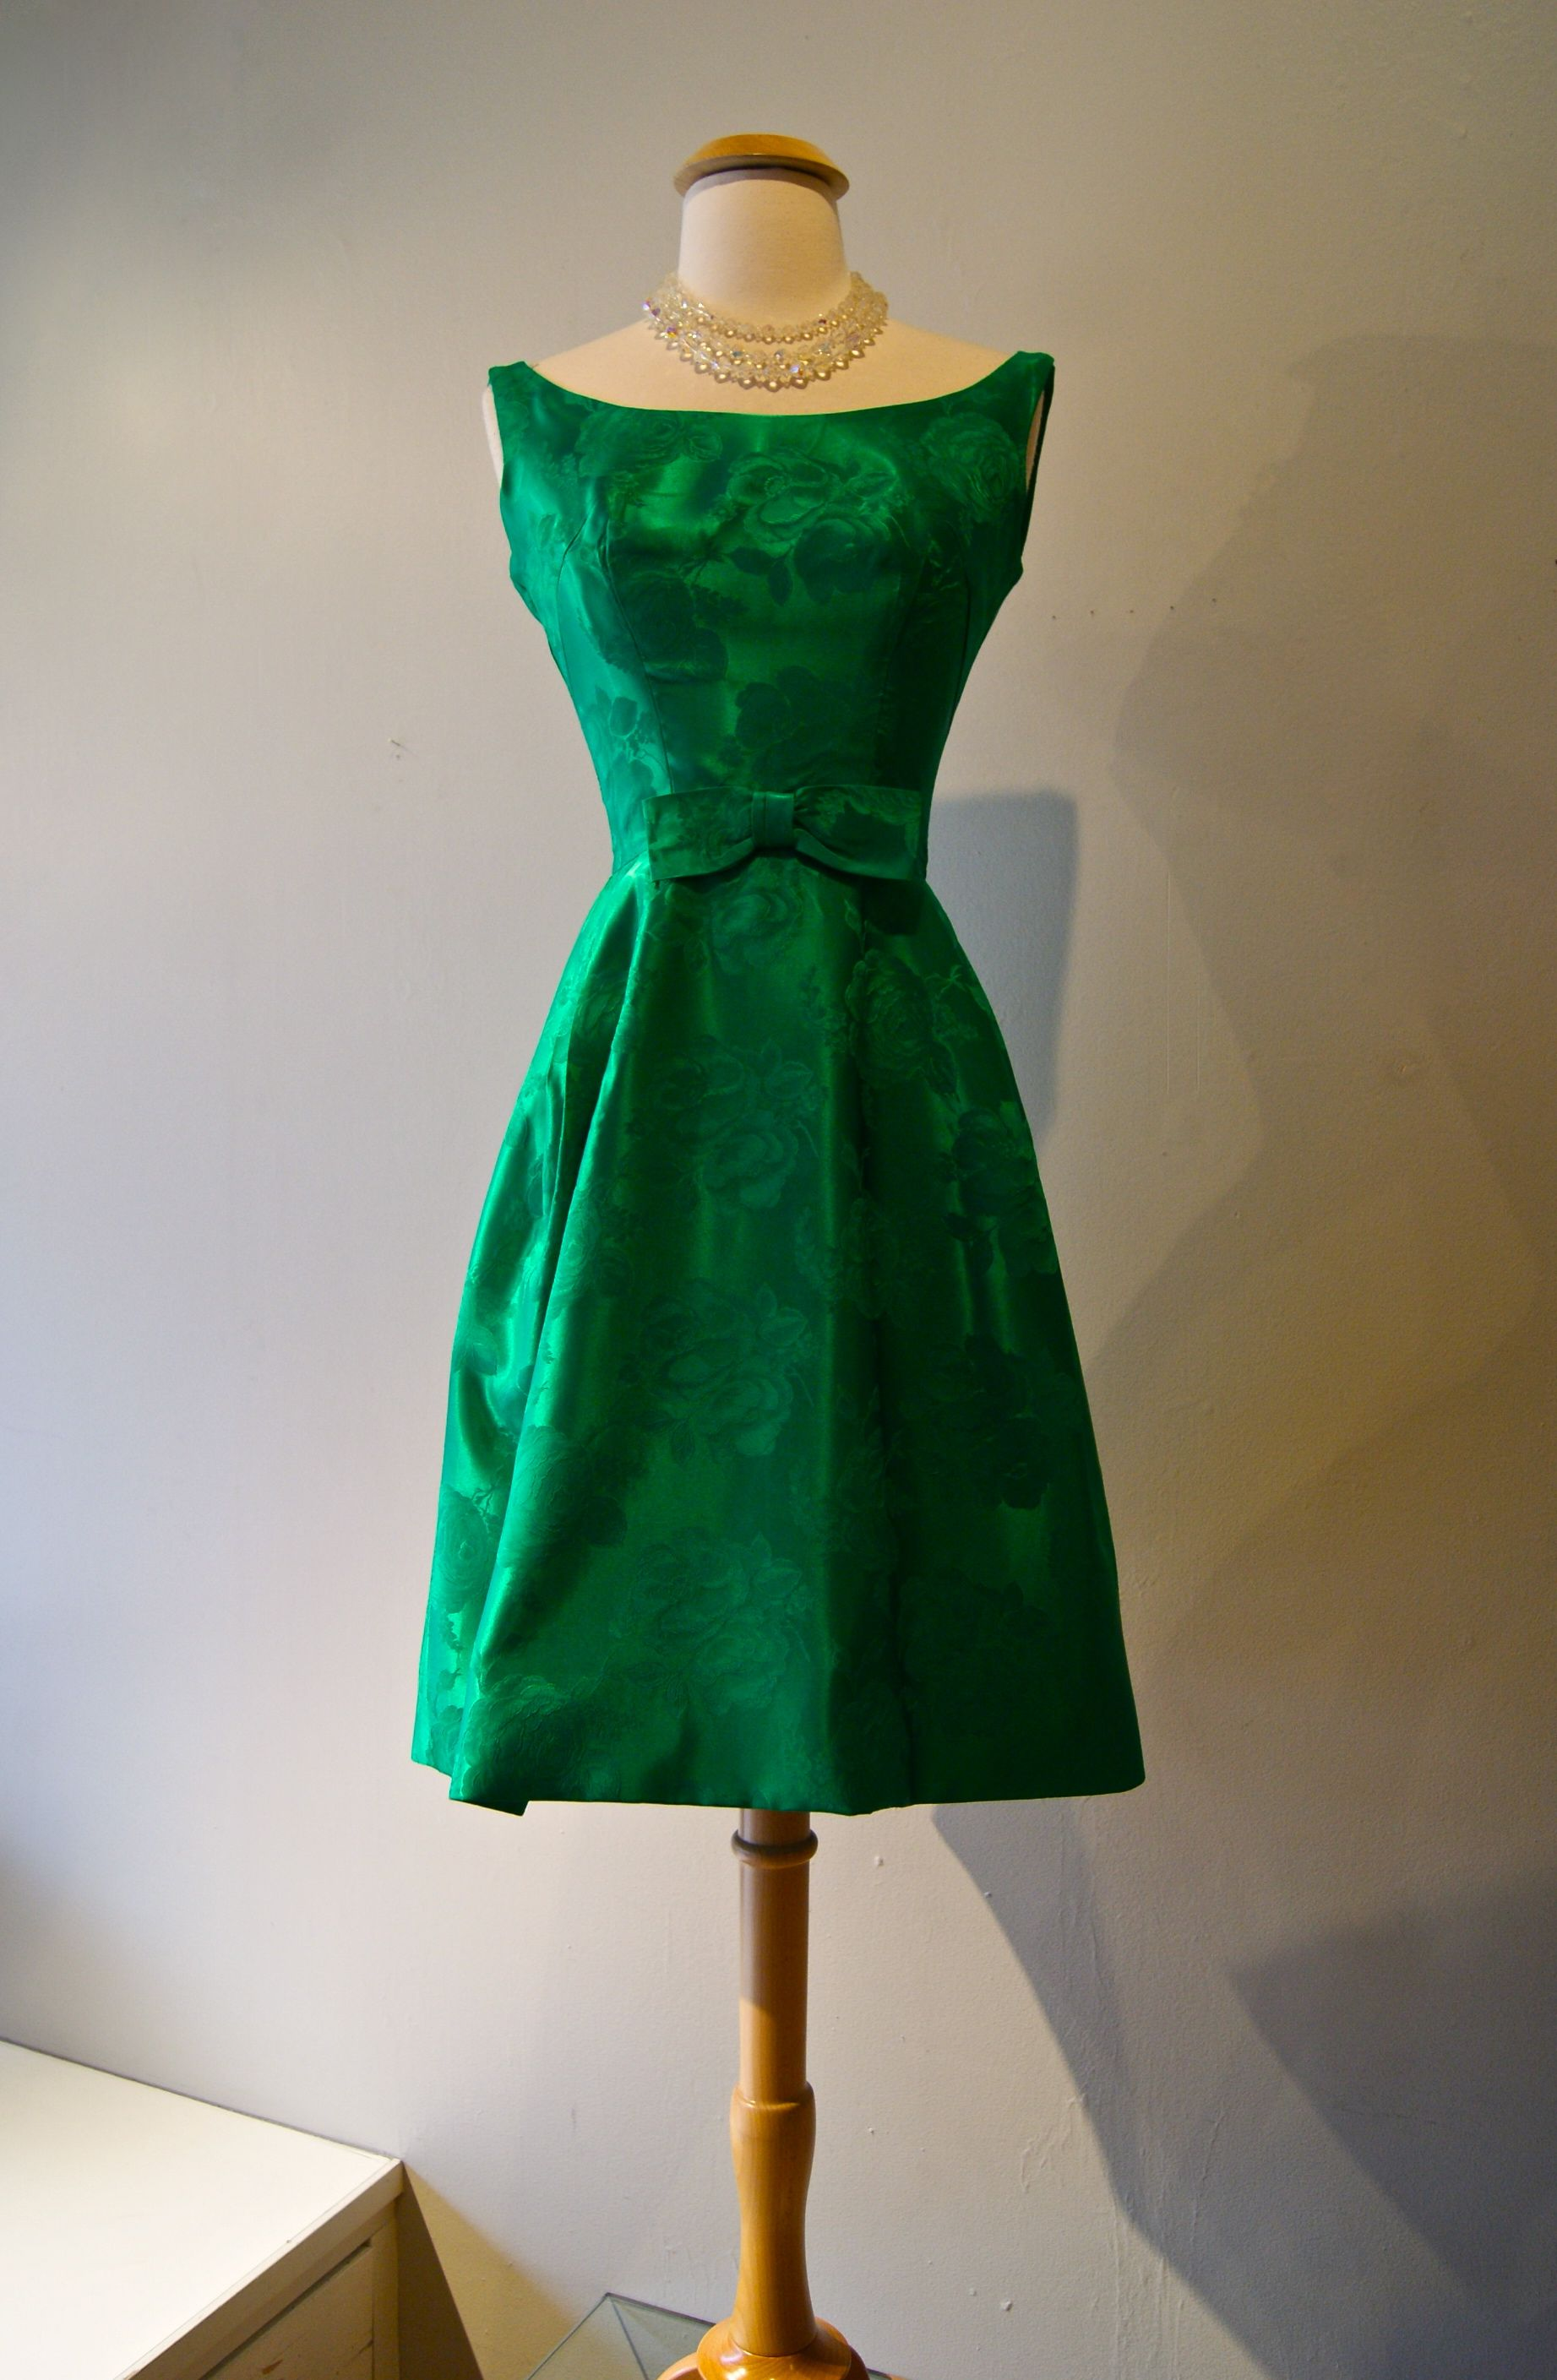 Vintage Dress 1960s Green Party Dress At Xtabay Vintage